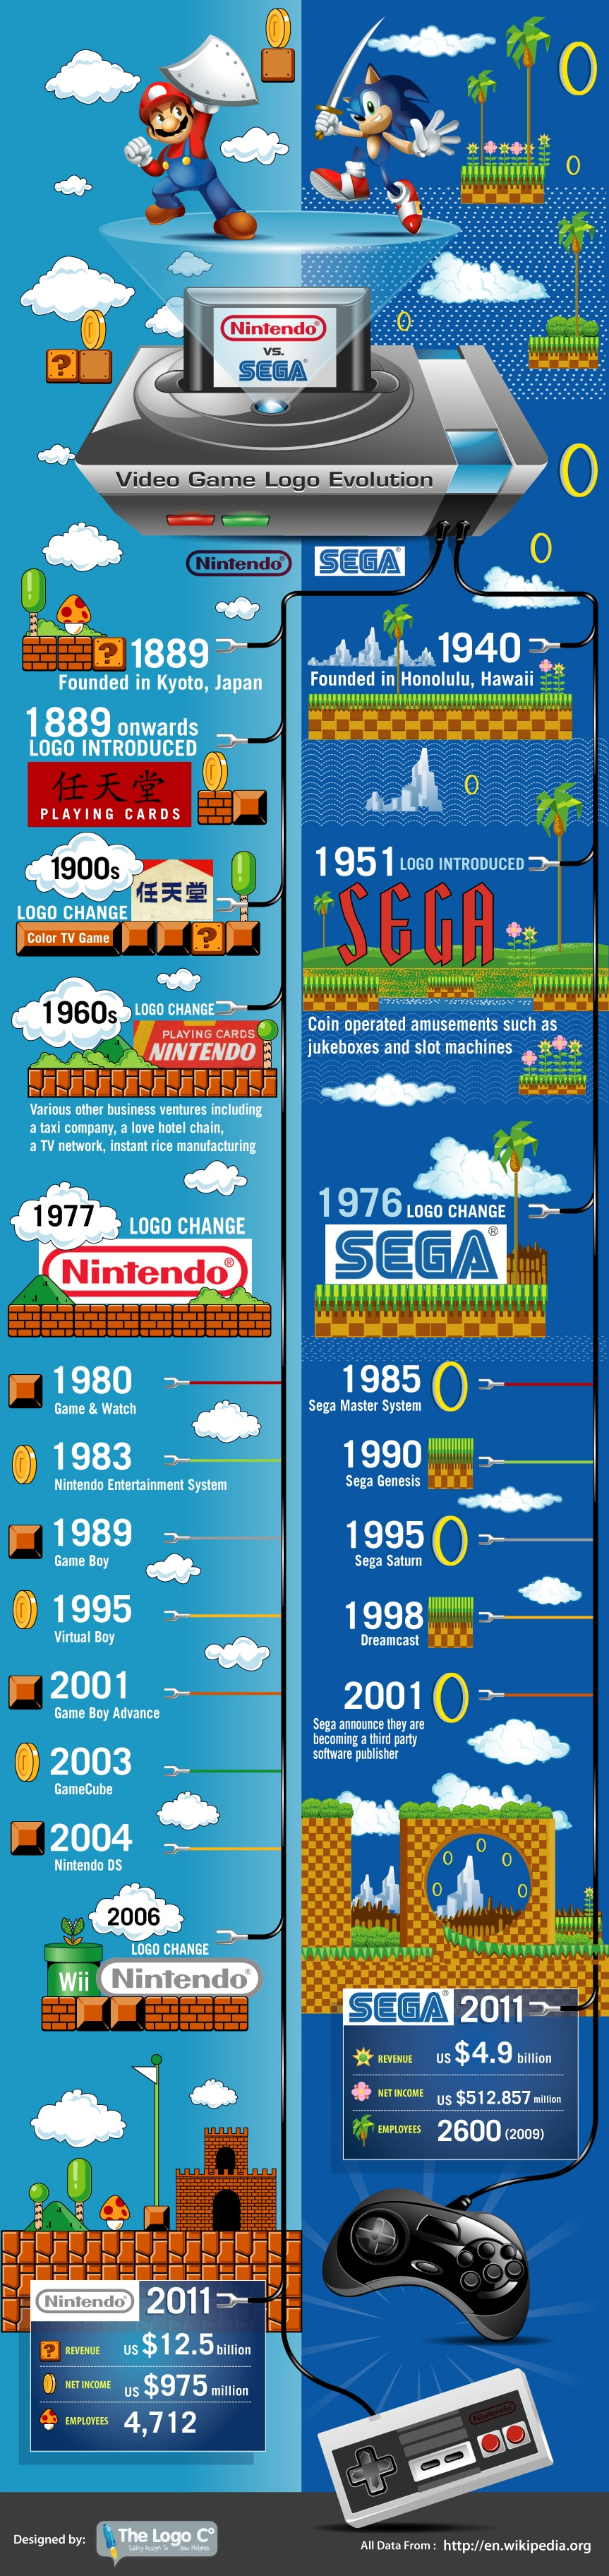 nintendo-vs-sega-logo-evolution